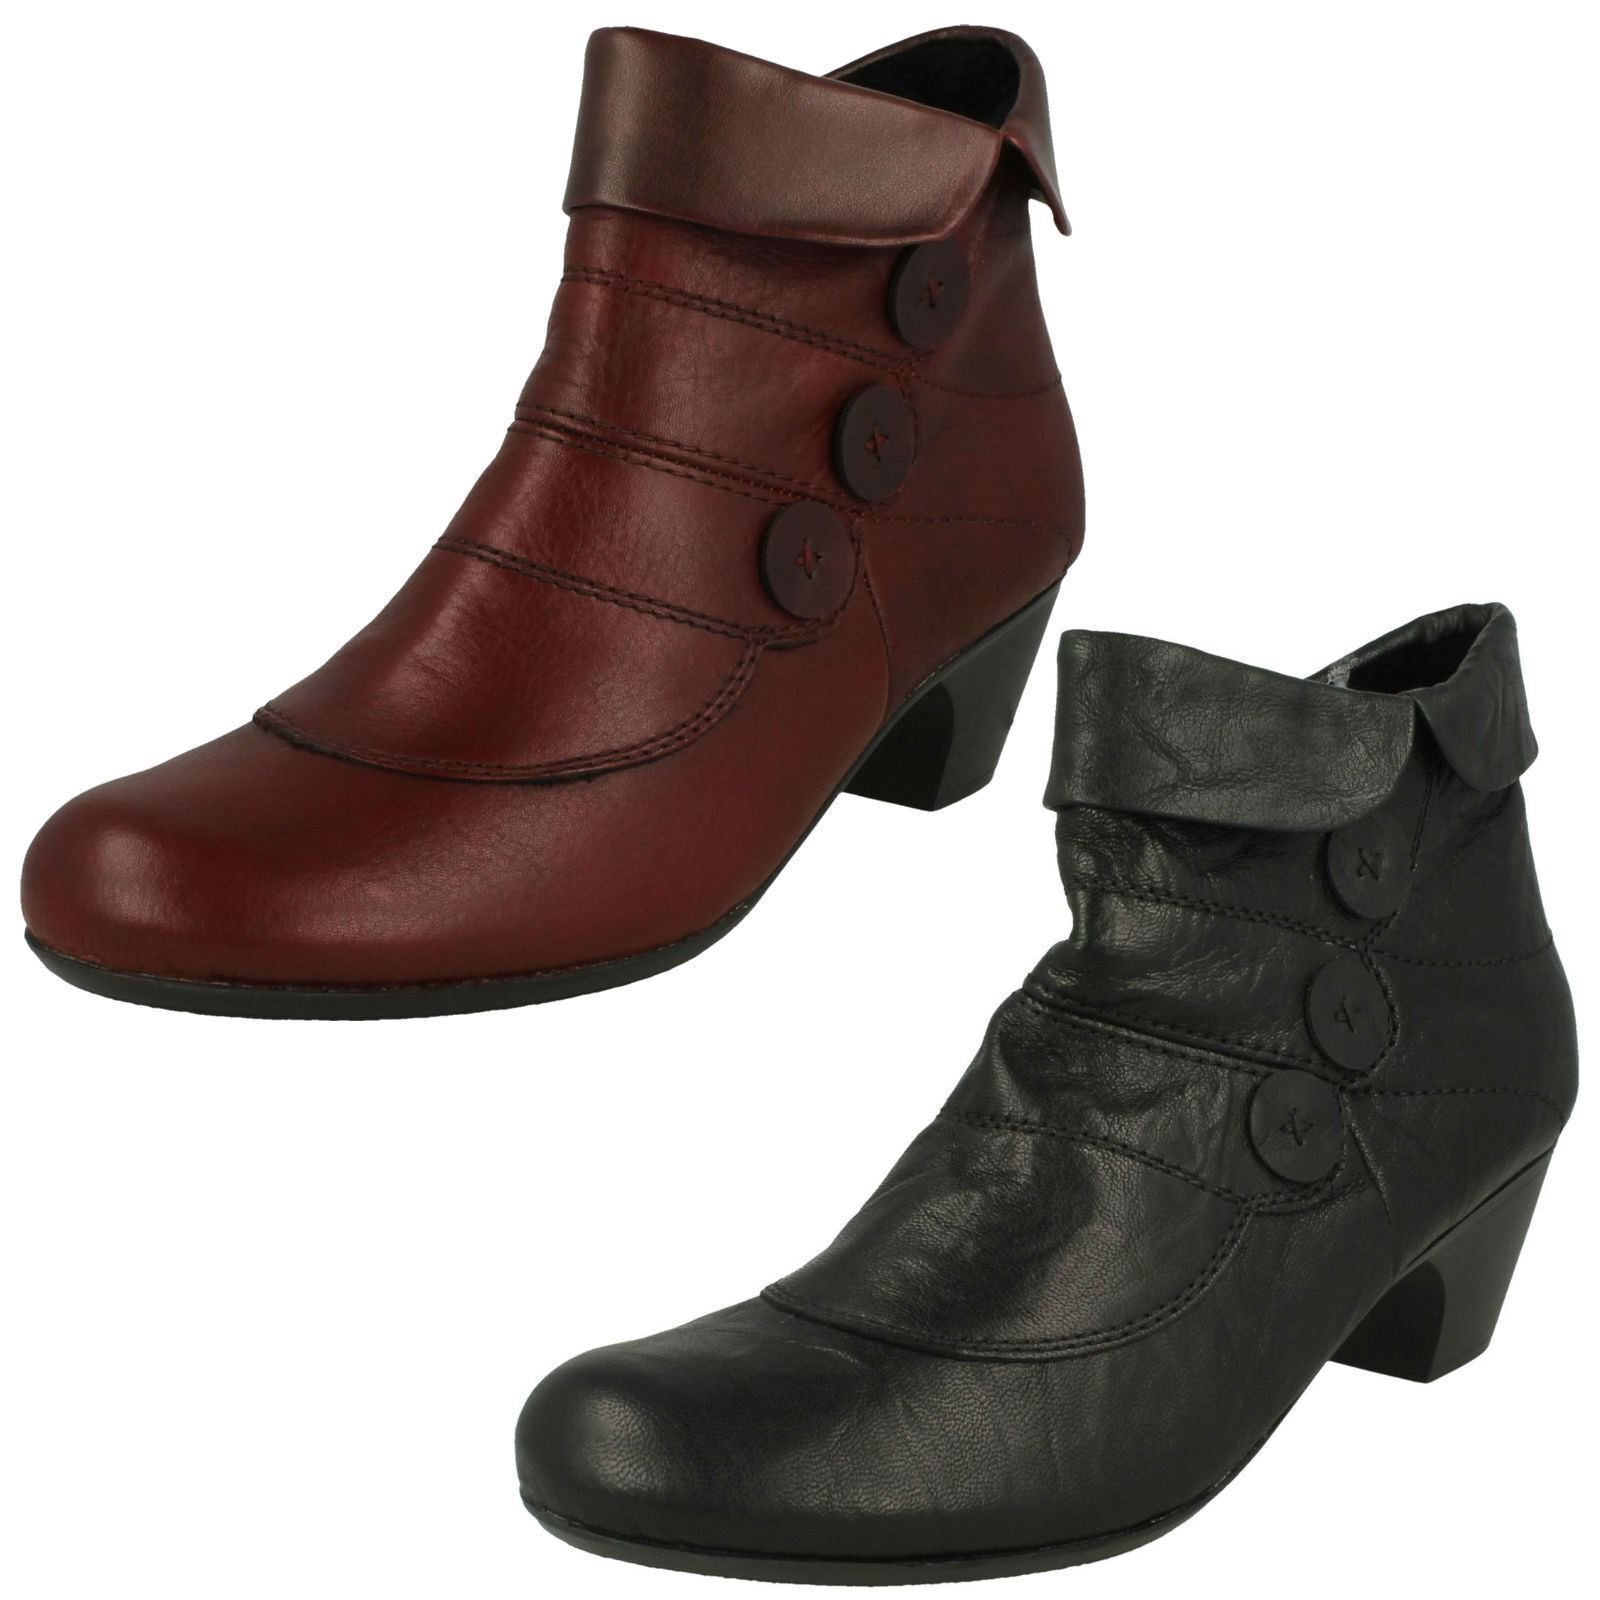 Women rieker 70562 red or black warm lined leather boots